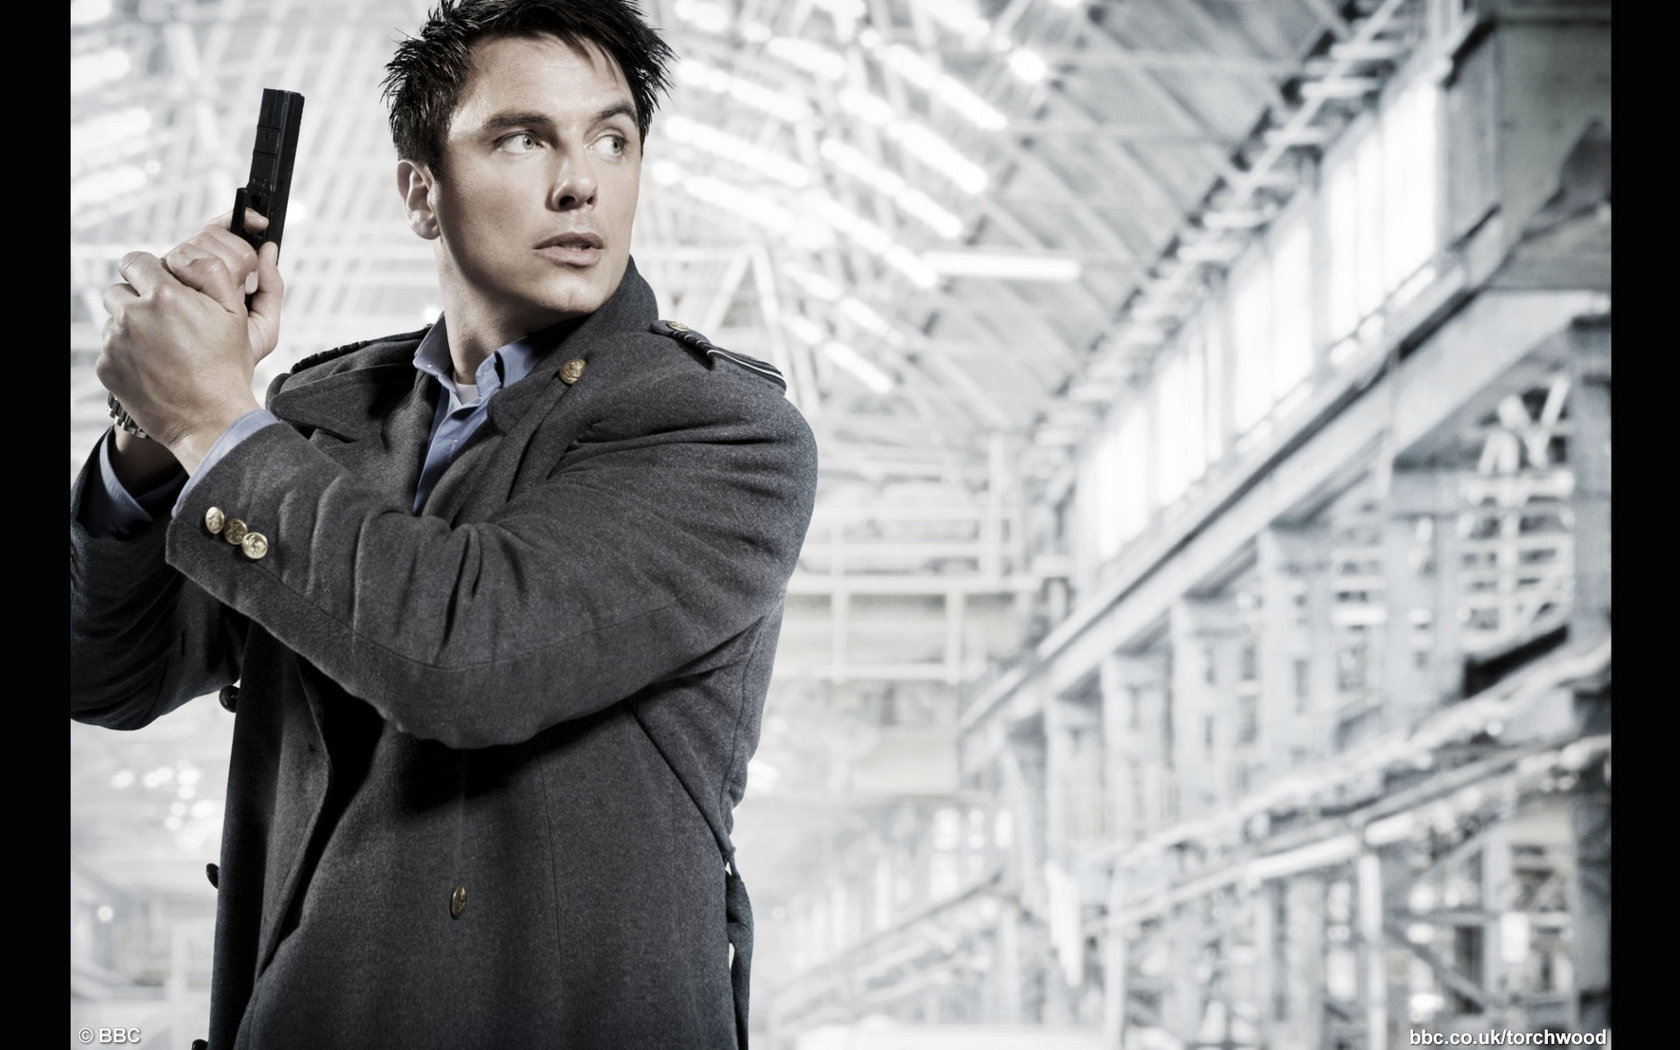 Torchwood John barrowman Jack HD Wallpaper